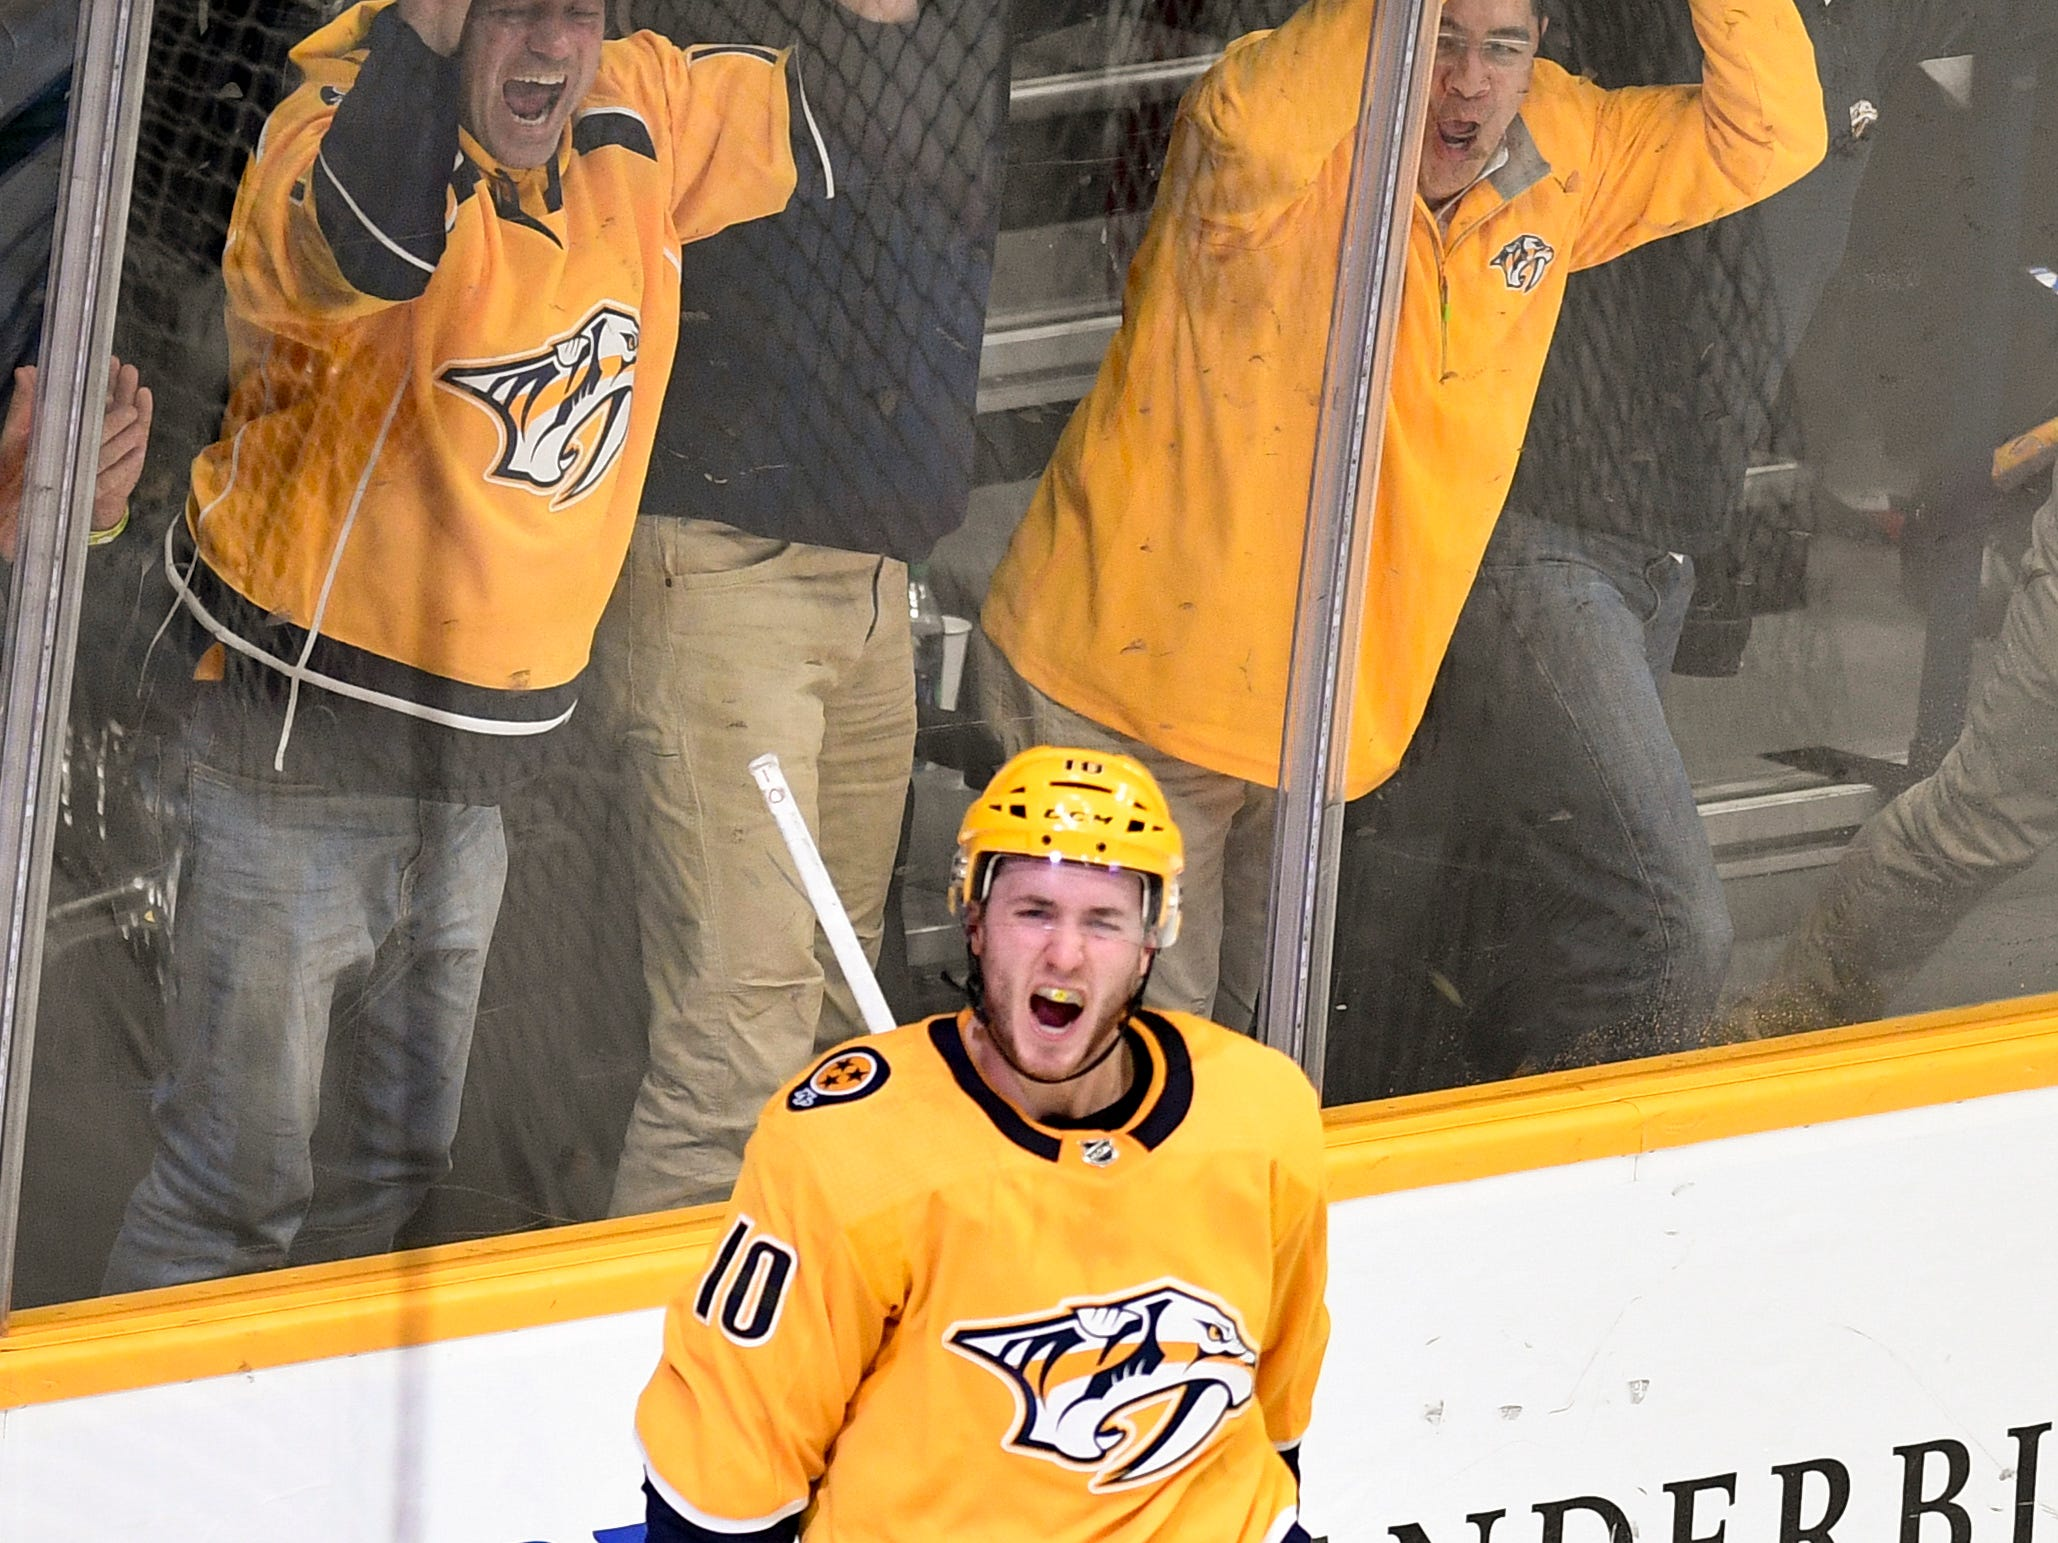 Nashville Predators center Colton Sissons (10) reacts to scoring the game-winning goal against the Vancouver Canucks in overtime at Bridgestone Arena in Nashville, Tenn., Thursday, Dec. 13, 2018.